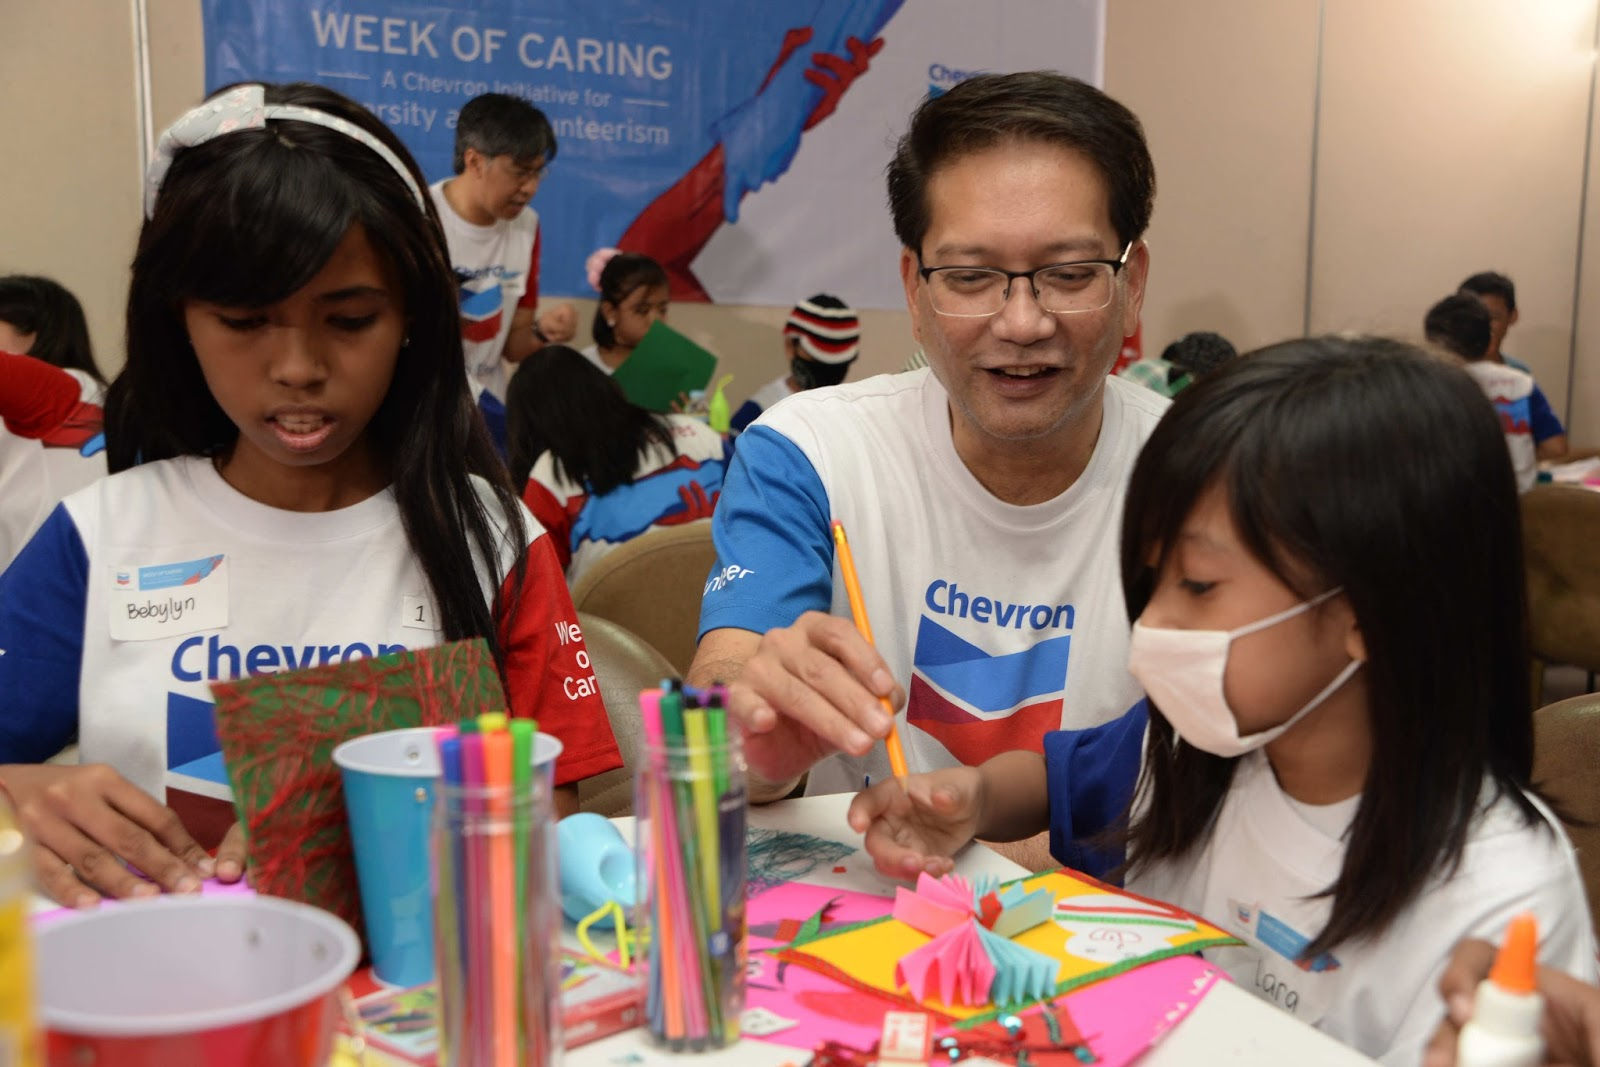 Chevron's Week of Caring